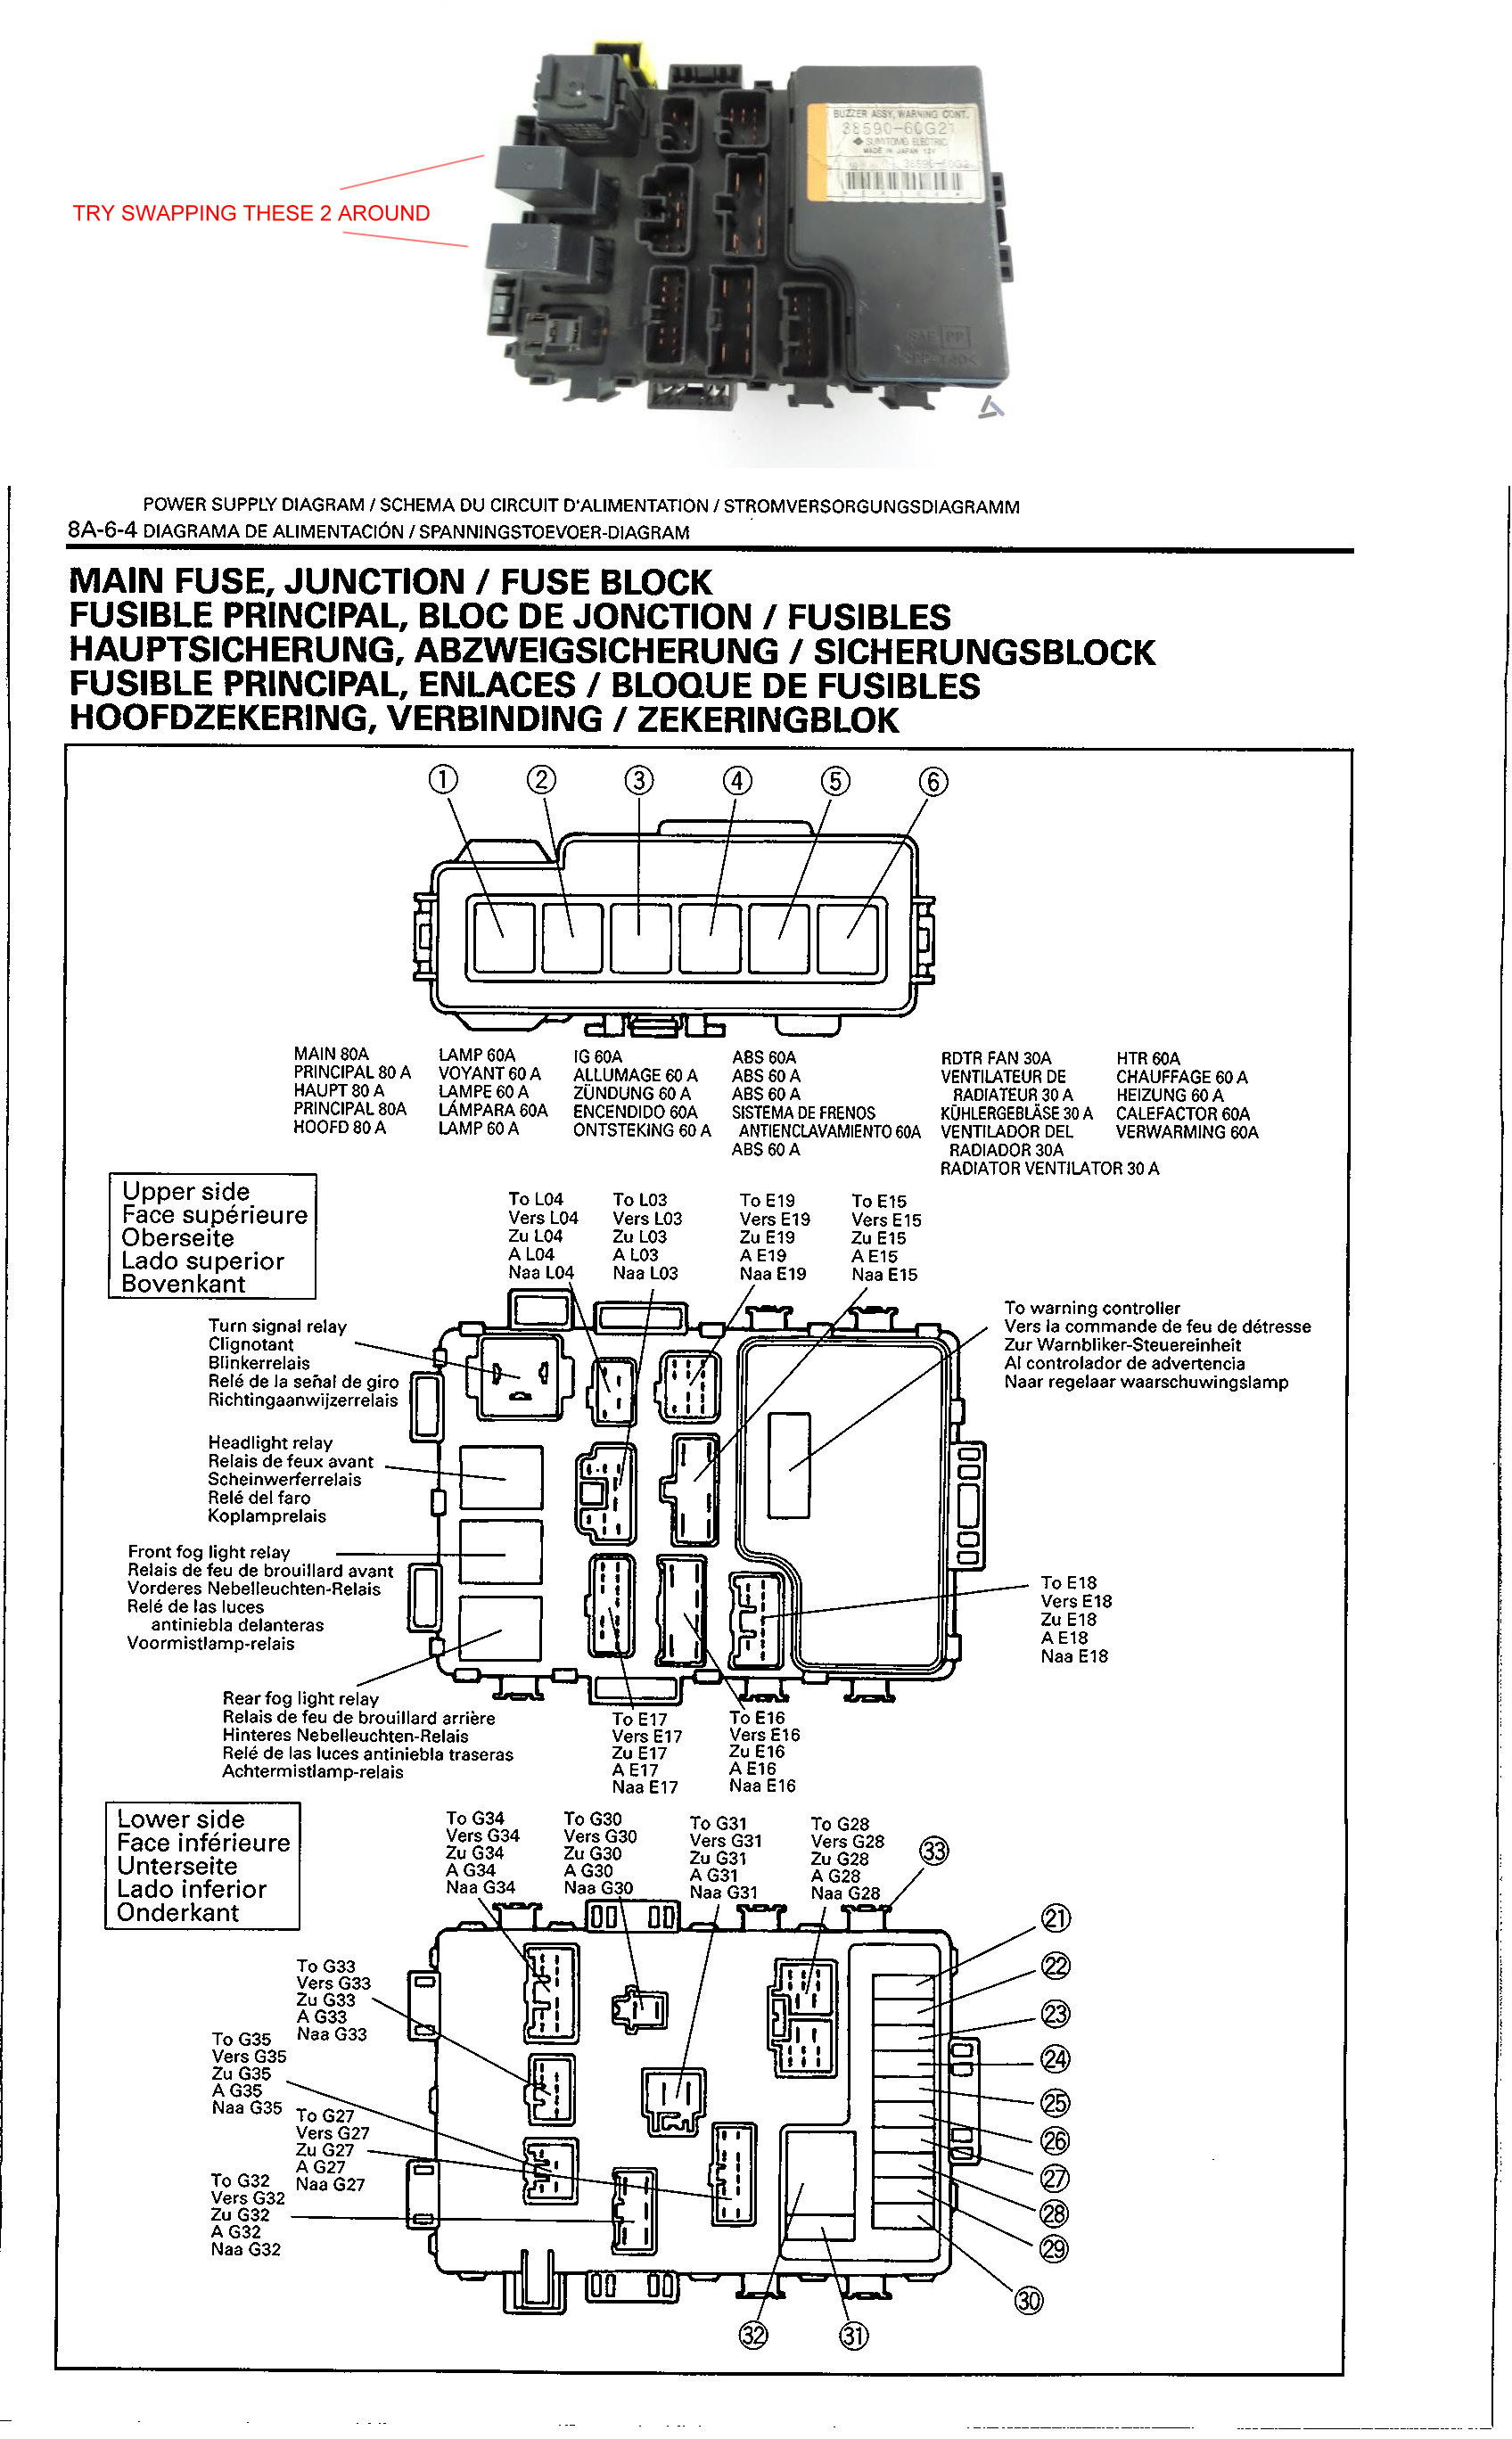 hight resolution of suzuki esteem fuse box location wiring diagram yer 2000 saturn sl fuse box suzuki esteem fuse